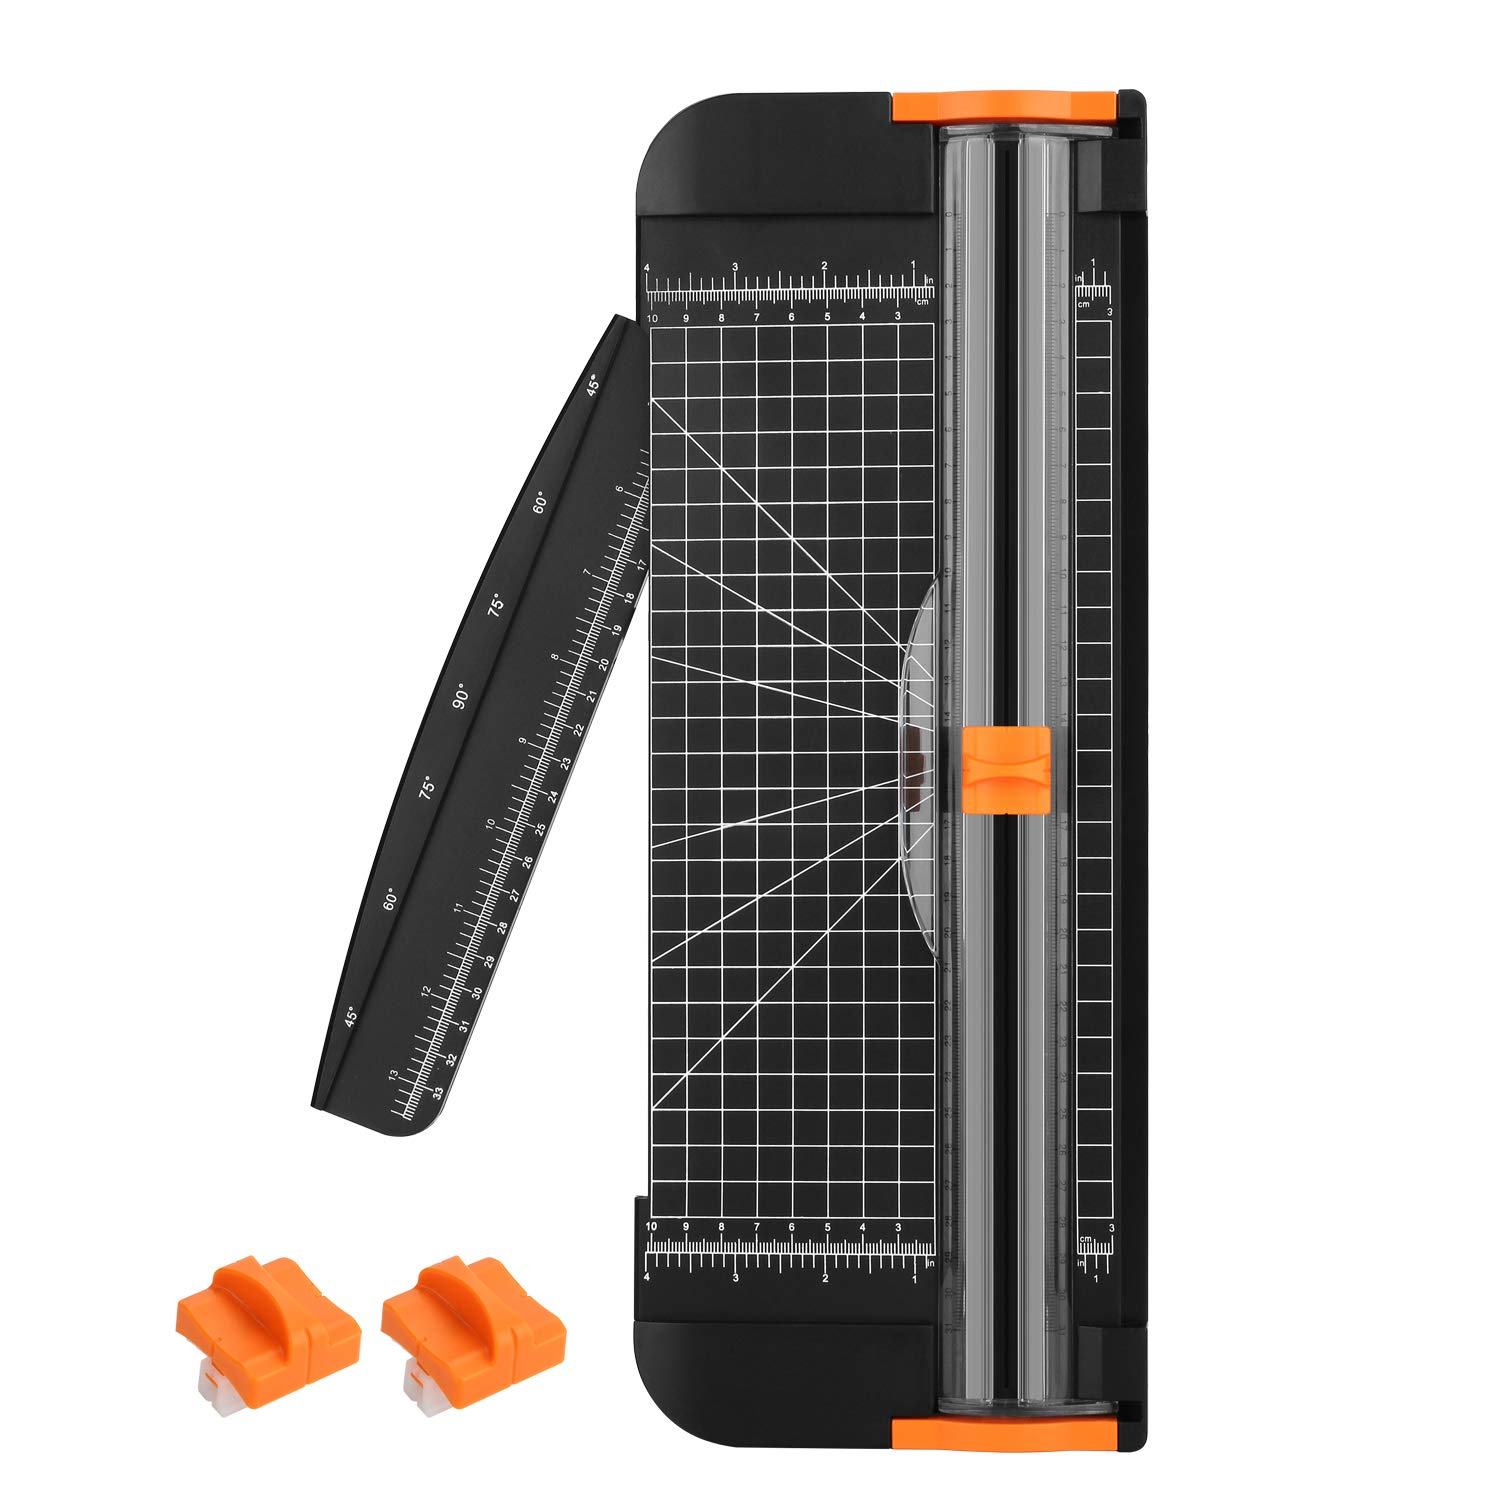 Paper Cutter, AGPTEK 12'' A4 Paper Trimmer with Automatic Security Safeguard for Scrapbooking, Craft Paper,Label & Photos - with Ruler and 2 Extra Blades by AGPTEK